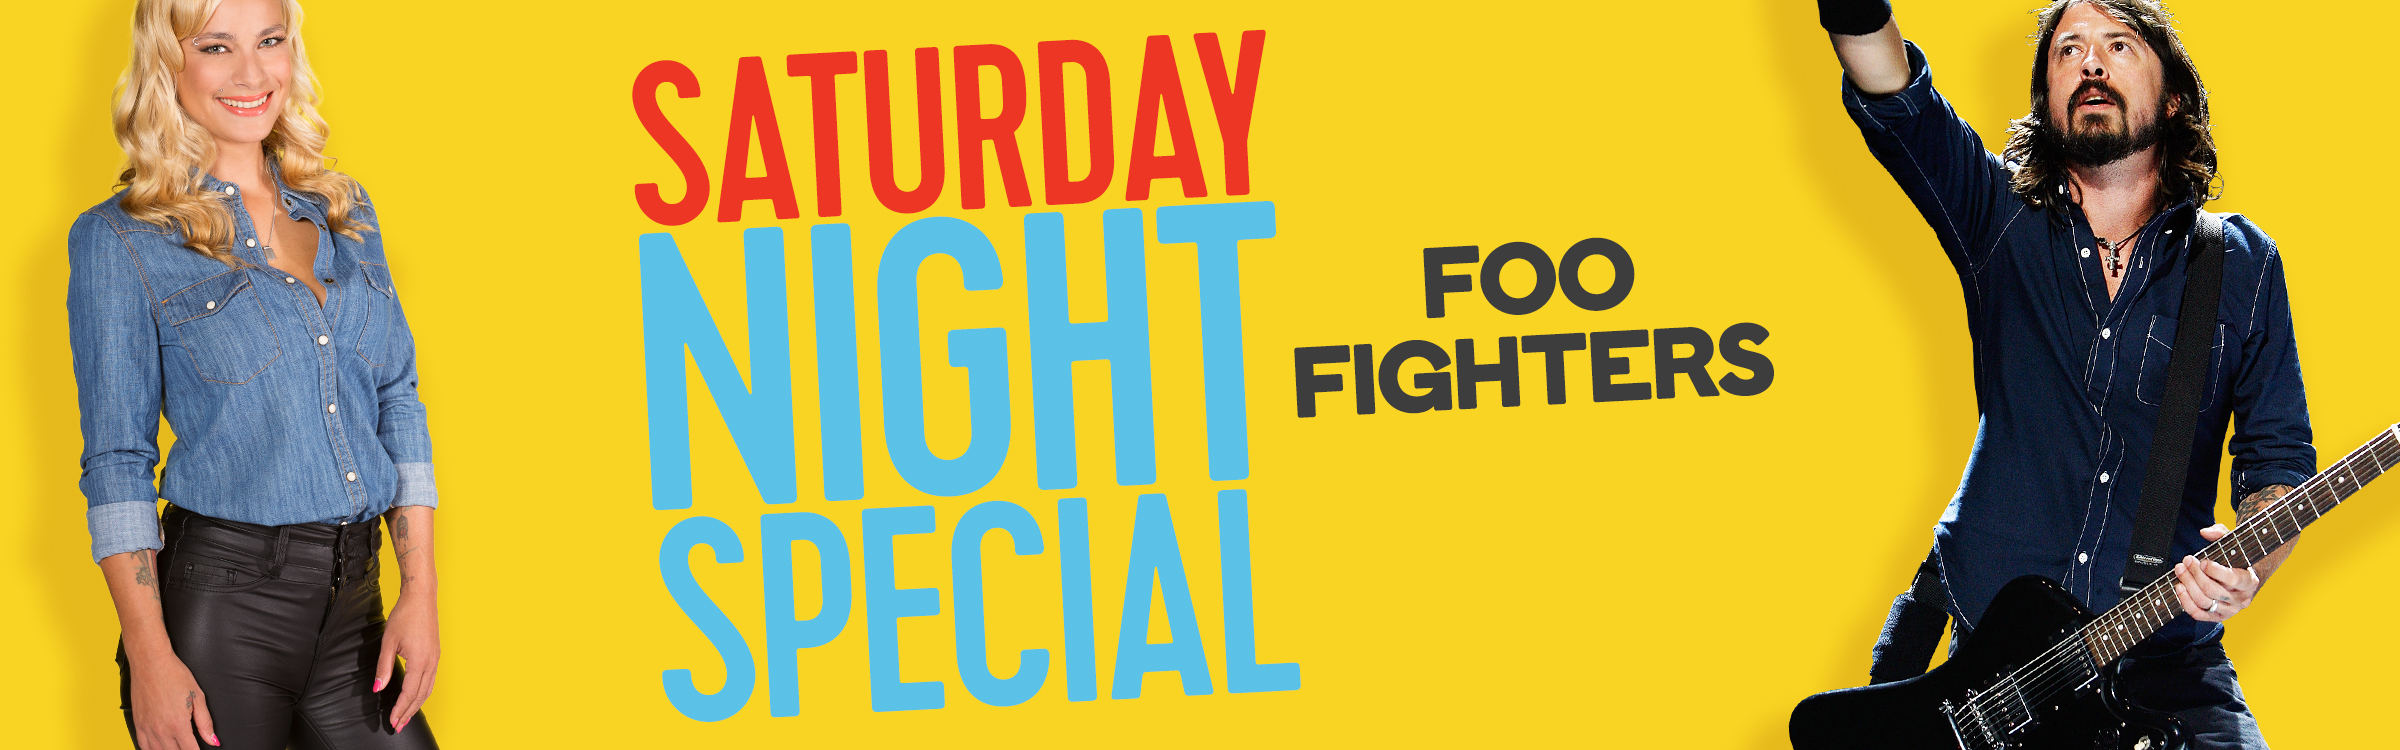 Q 2400x750 saturdaynightspecial foofighters